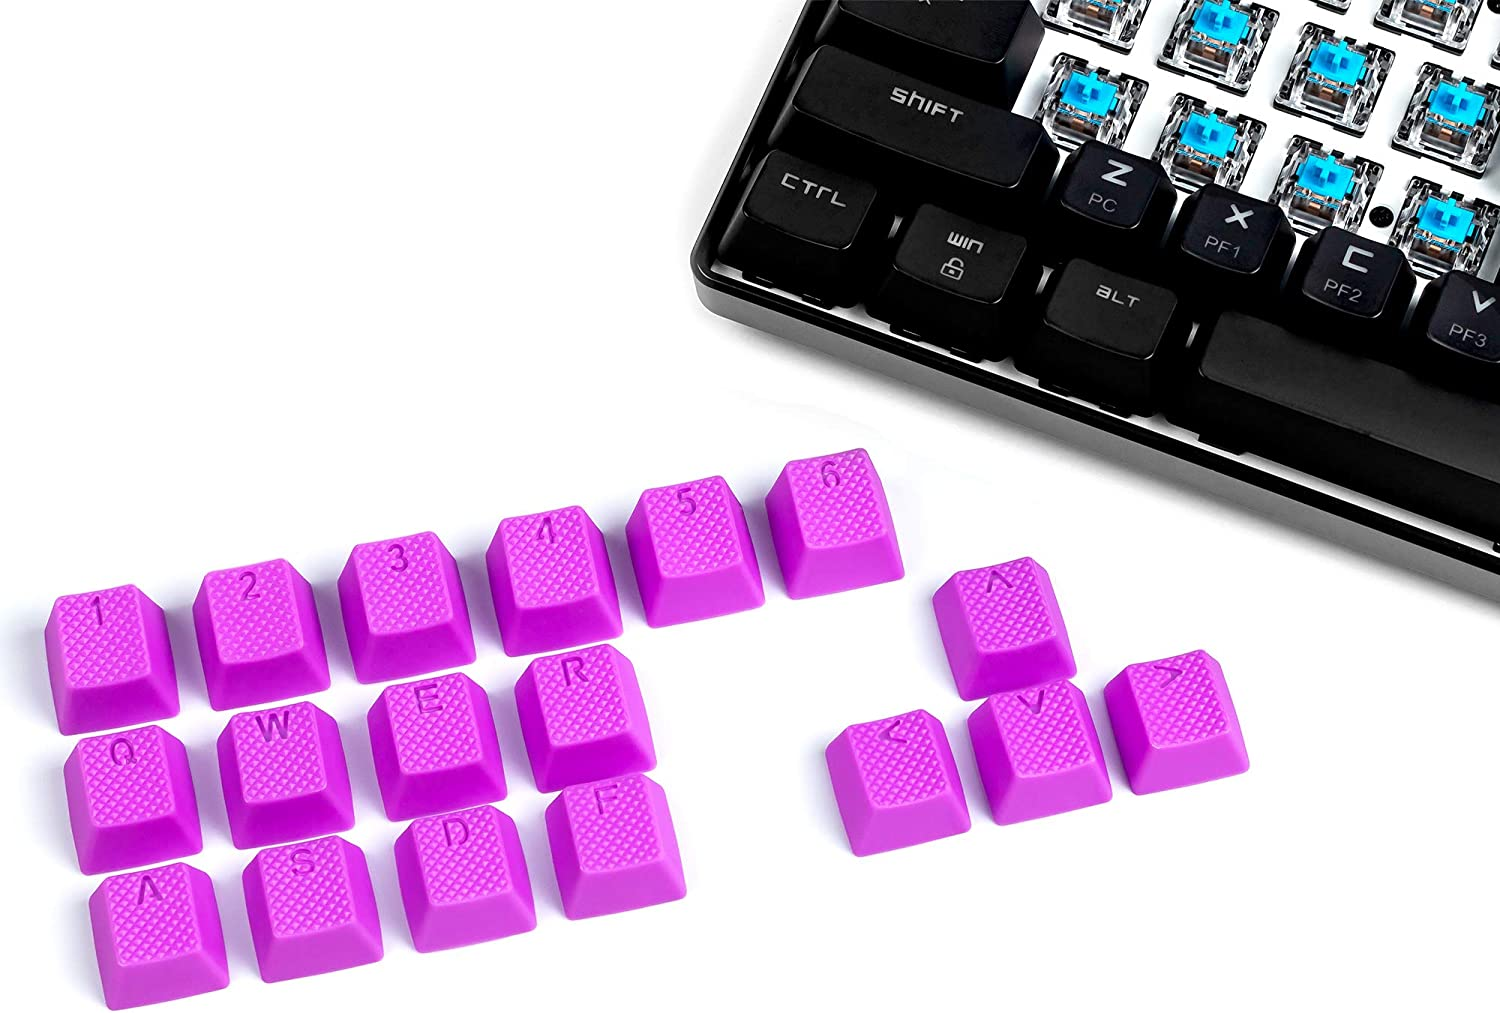 VULTURE Rubber Keycaps Cherry MX Double Shot Backlit 18 Keycap Set Compatible for Gaming Mechanical Keyboard OEM Profile Doubleshot Rubberized Diamond Textured Tactile Grip with Key Puller (Purple)